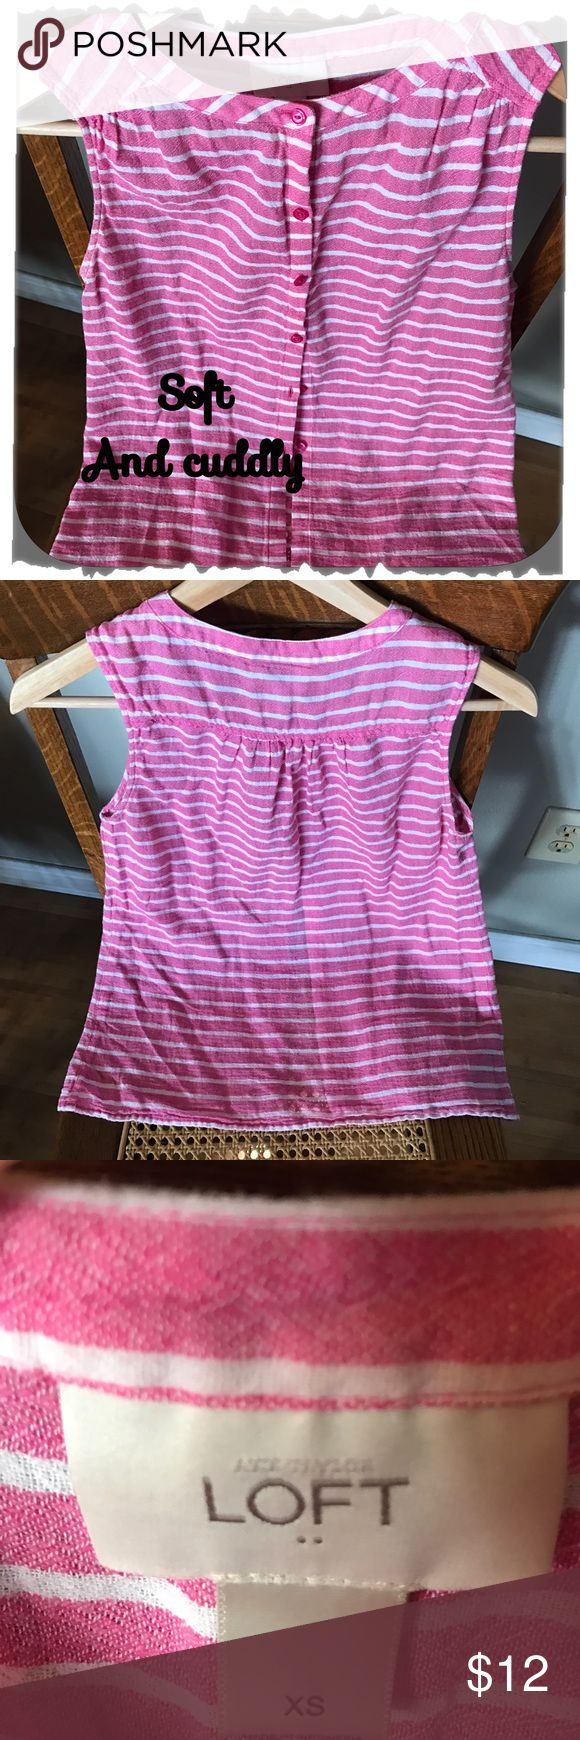 Anne Taylor Loft! XS  Sooo Cute and ready to wear! Soft and cuddly, used, but lots of love left in this cute top! Perfect for Spring with a sweater and Summer wear! LOFT Tops Button Down Shirts